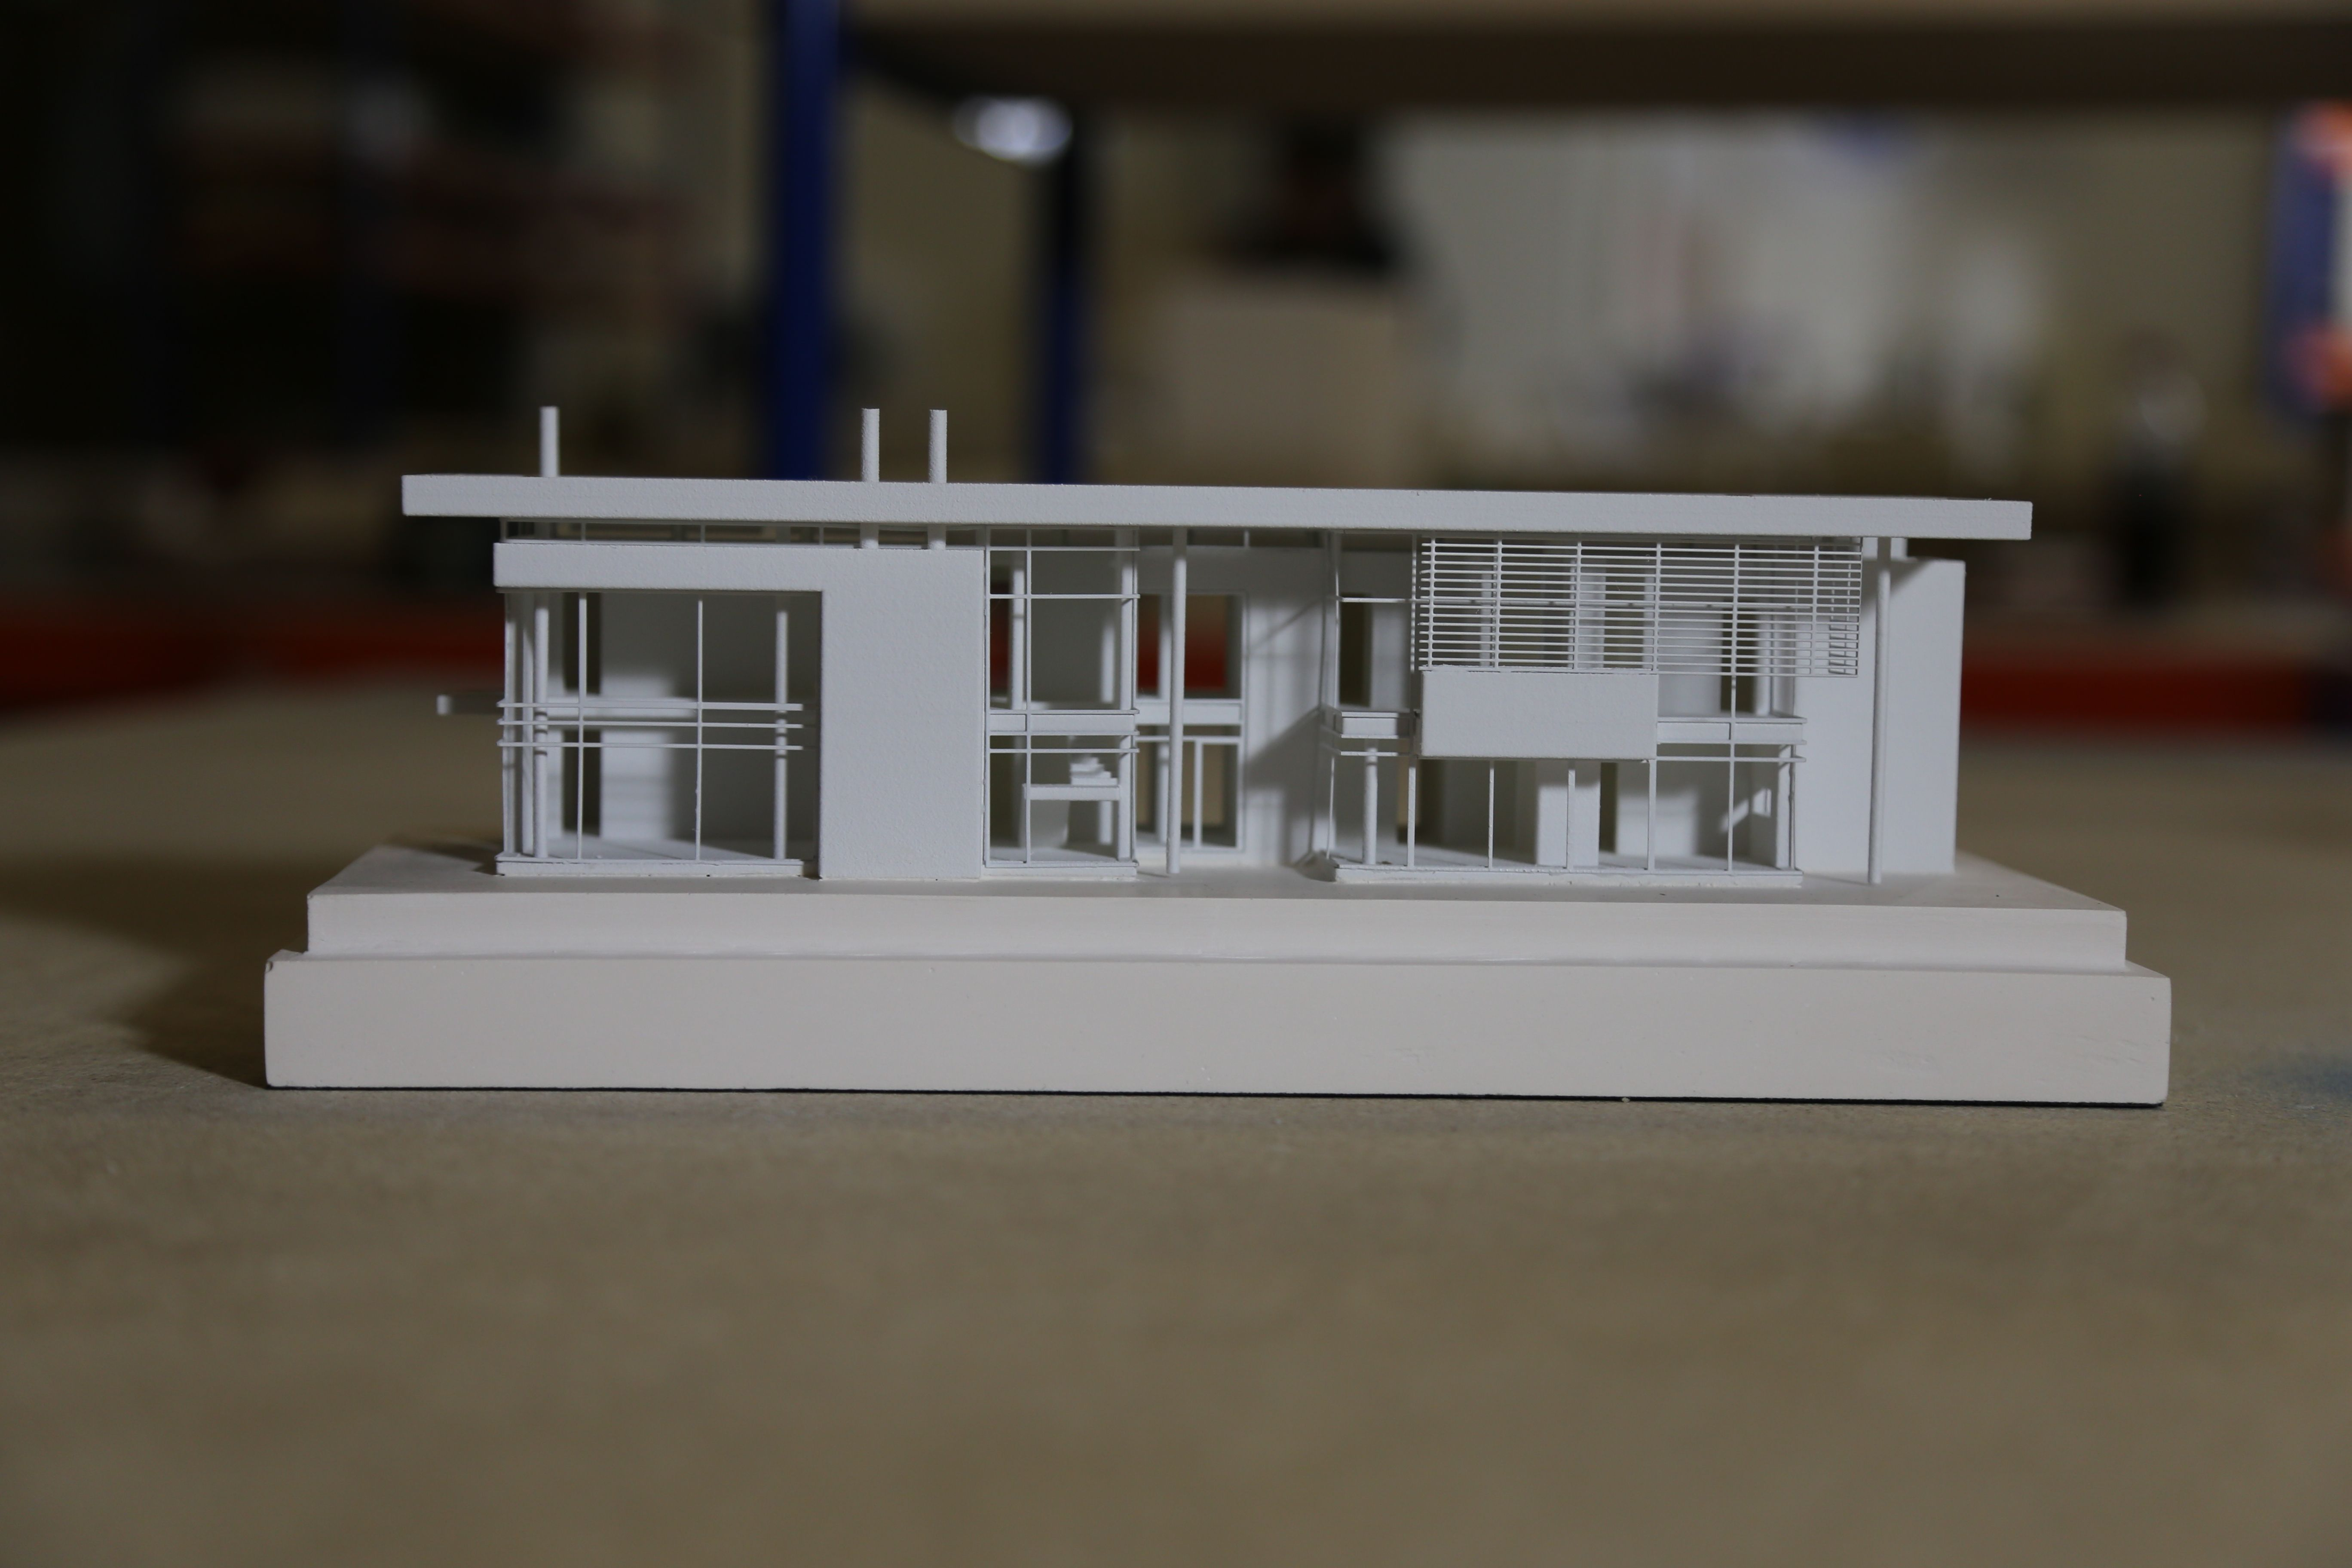 Handsmooth House Designed By Richard Meier We Made This Architectural Model By Creating 3d Drawings